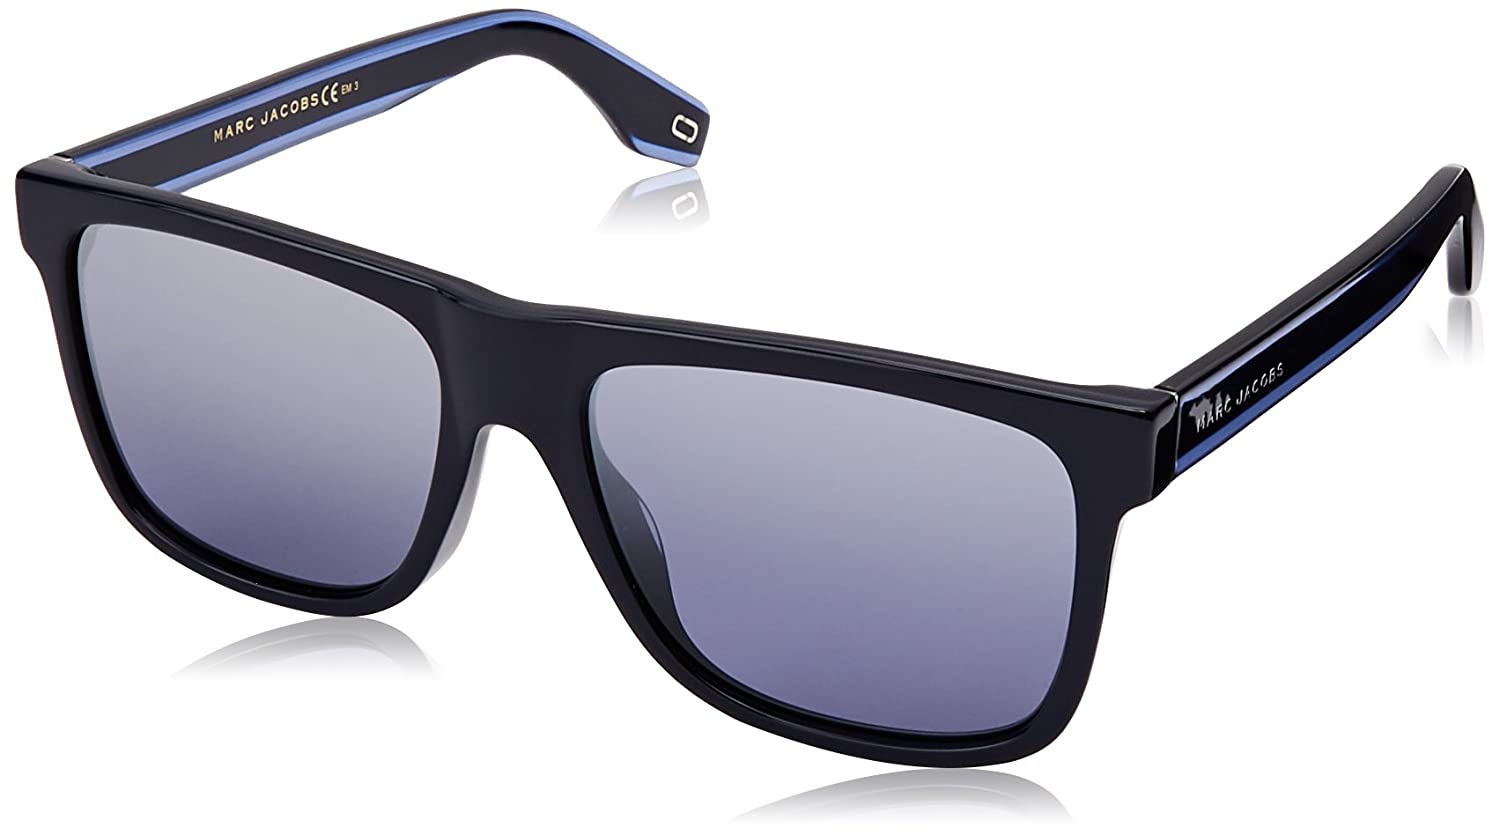 Amazon.com: Marc Jacobs sunglasses (MARC-275-S PJP/96) Dark ...